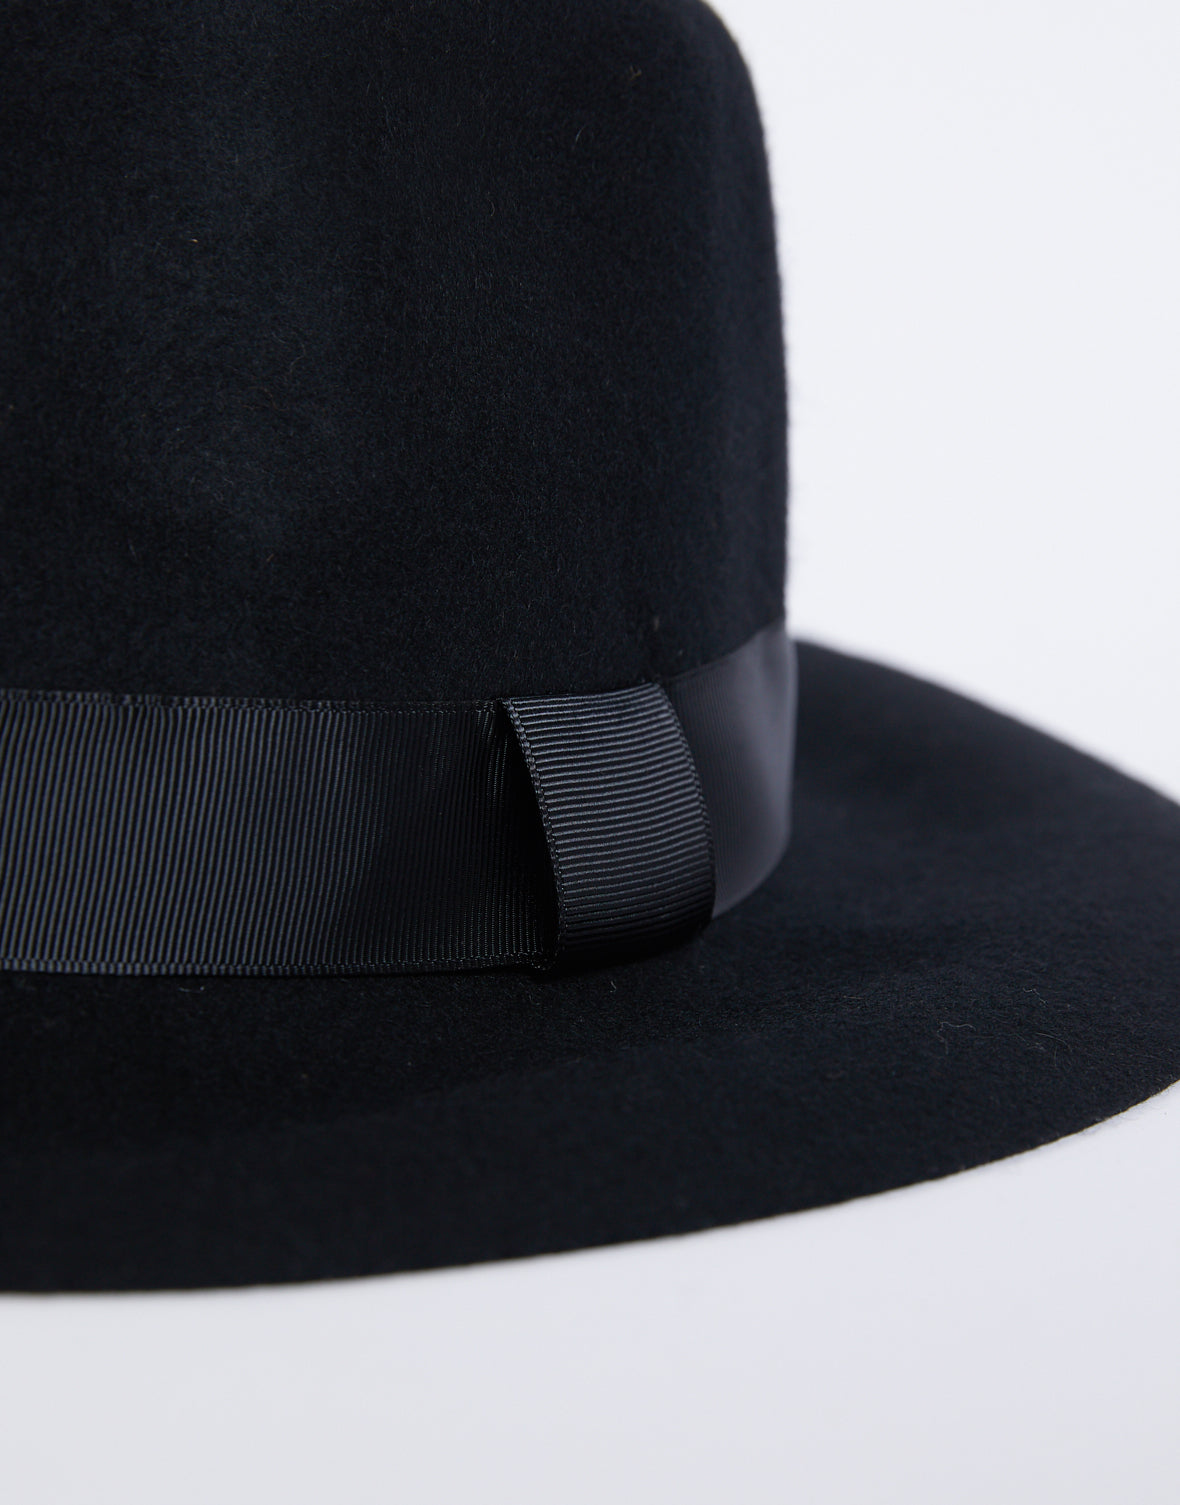 The Sydney Fedora Hat